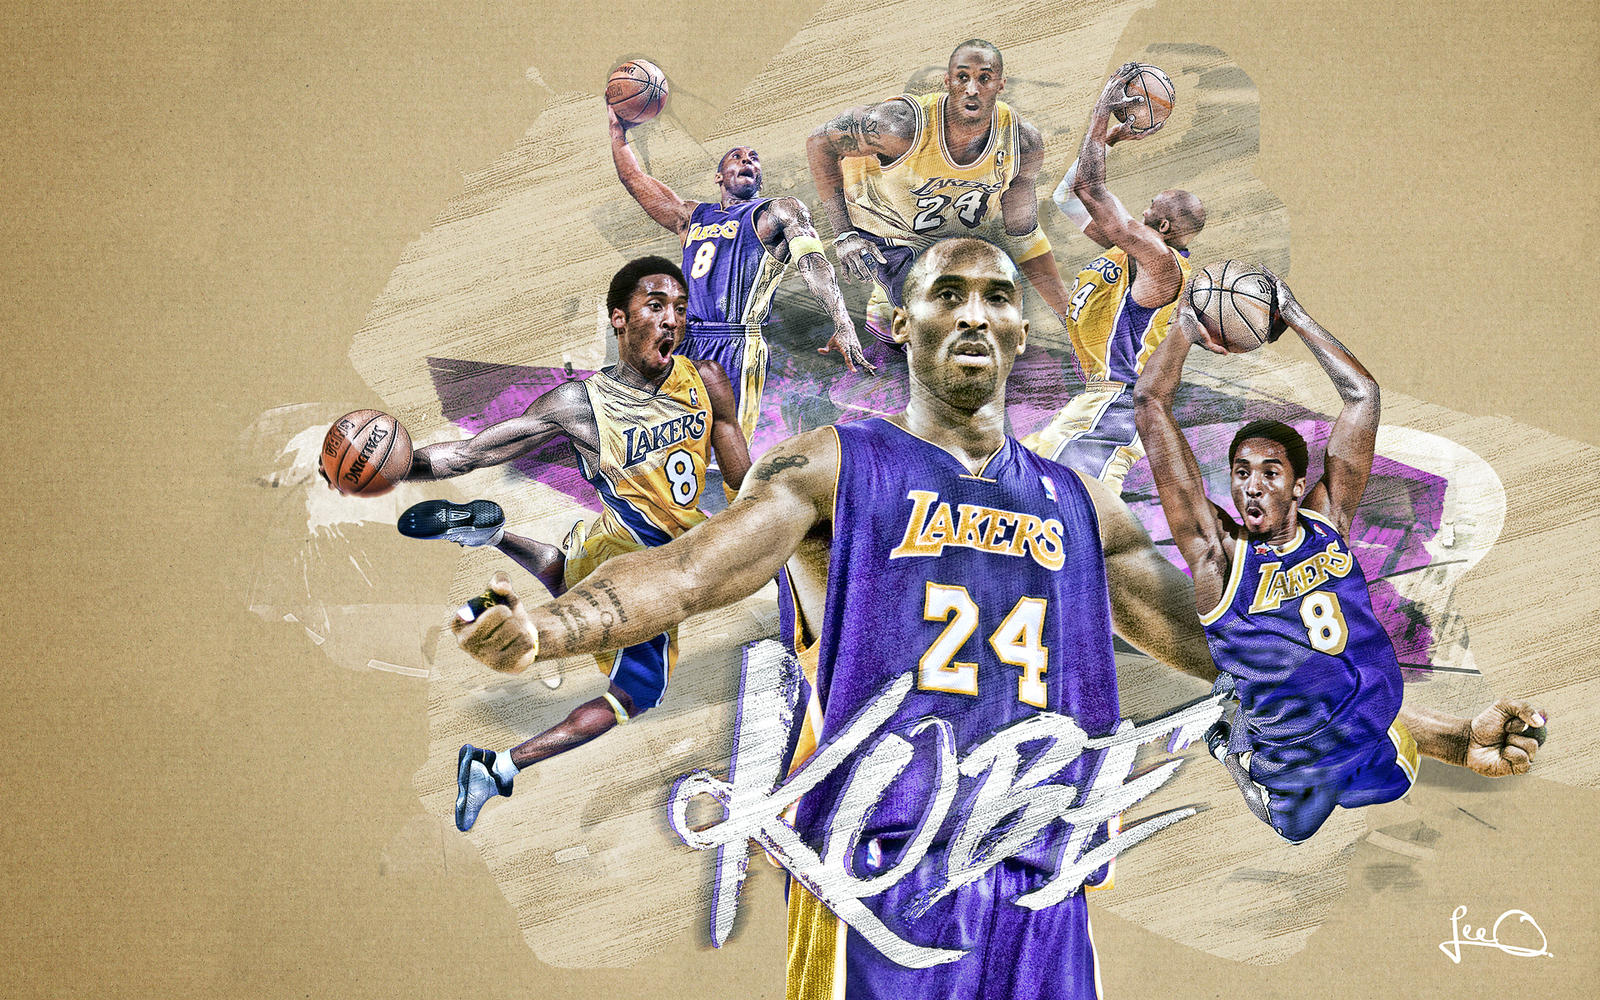 Kobe bryant wallpaper by skythlee on deviantart - Kobe bryant wallpaper free download ...